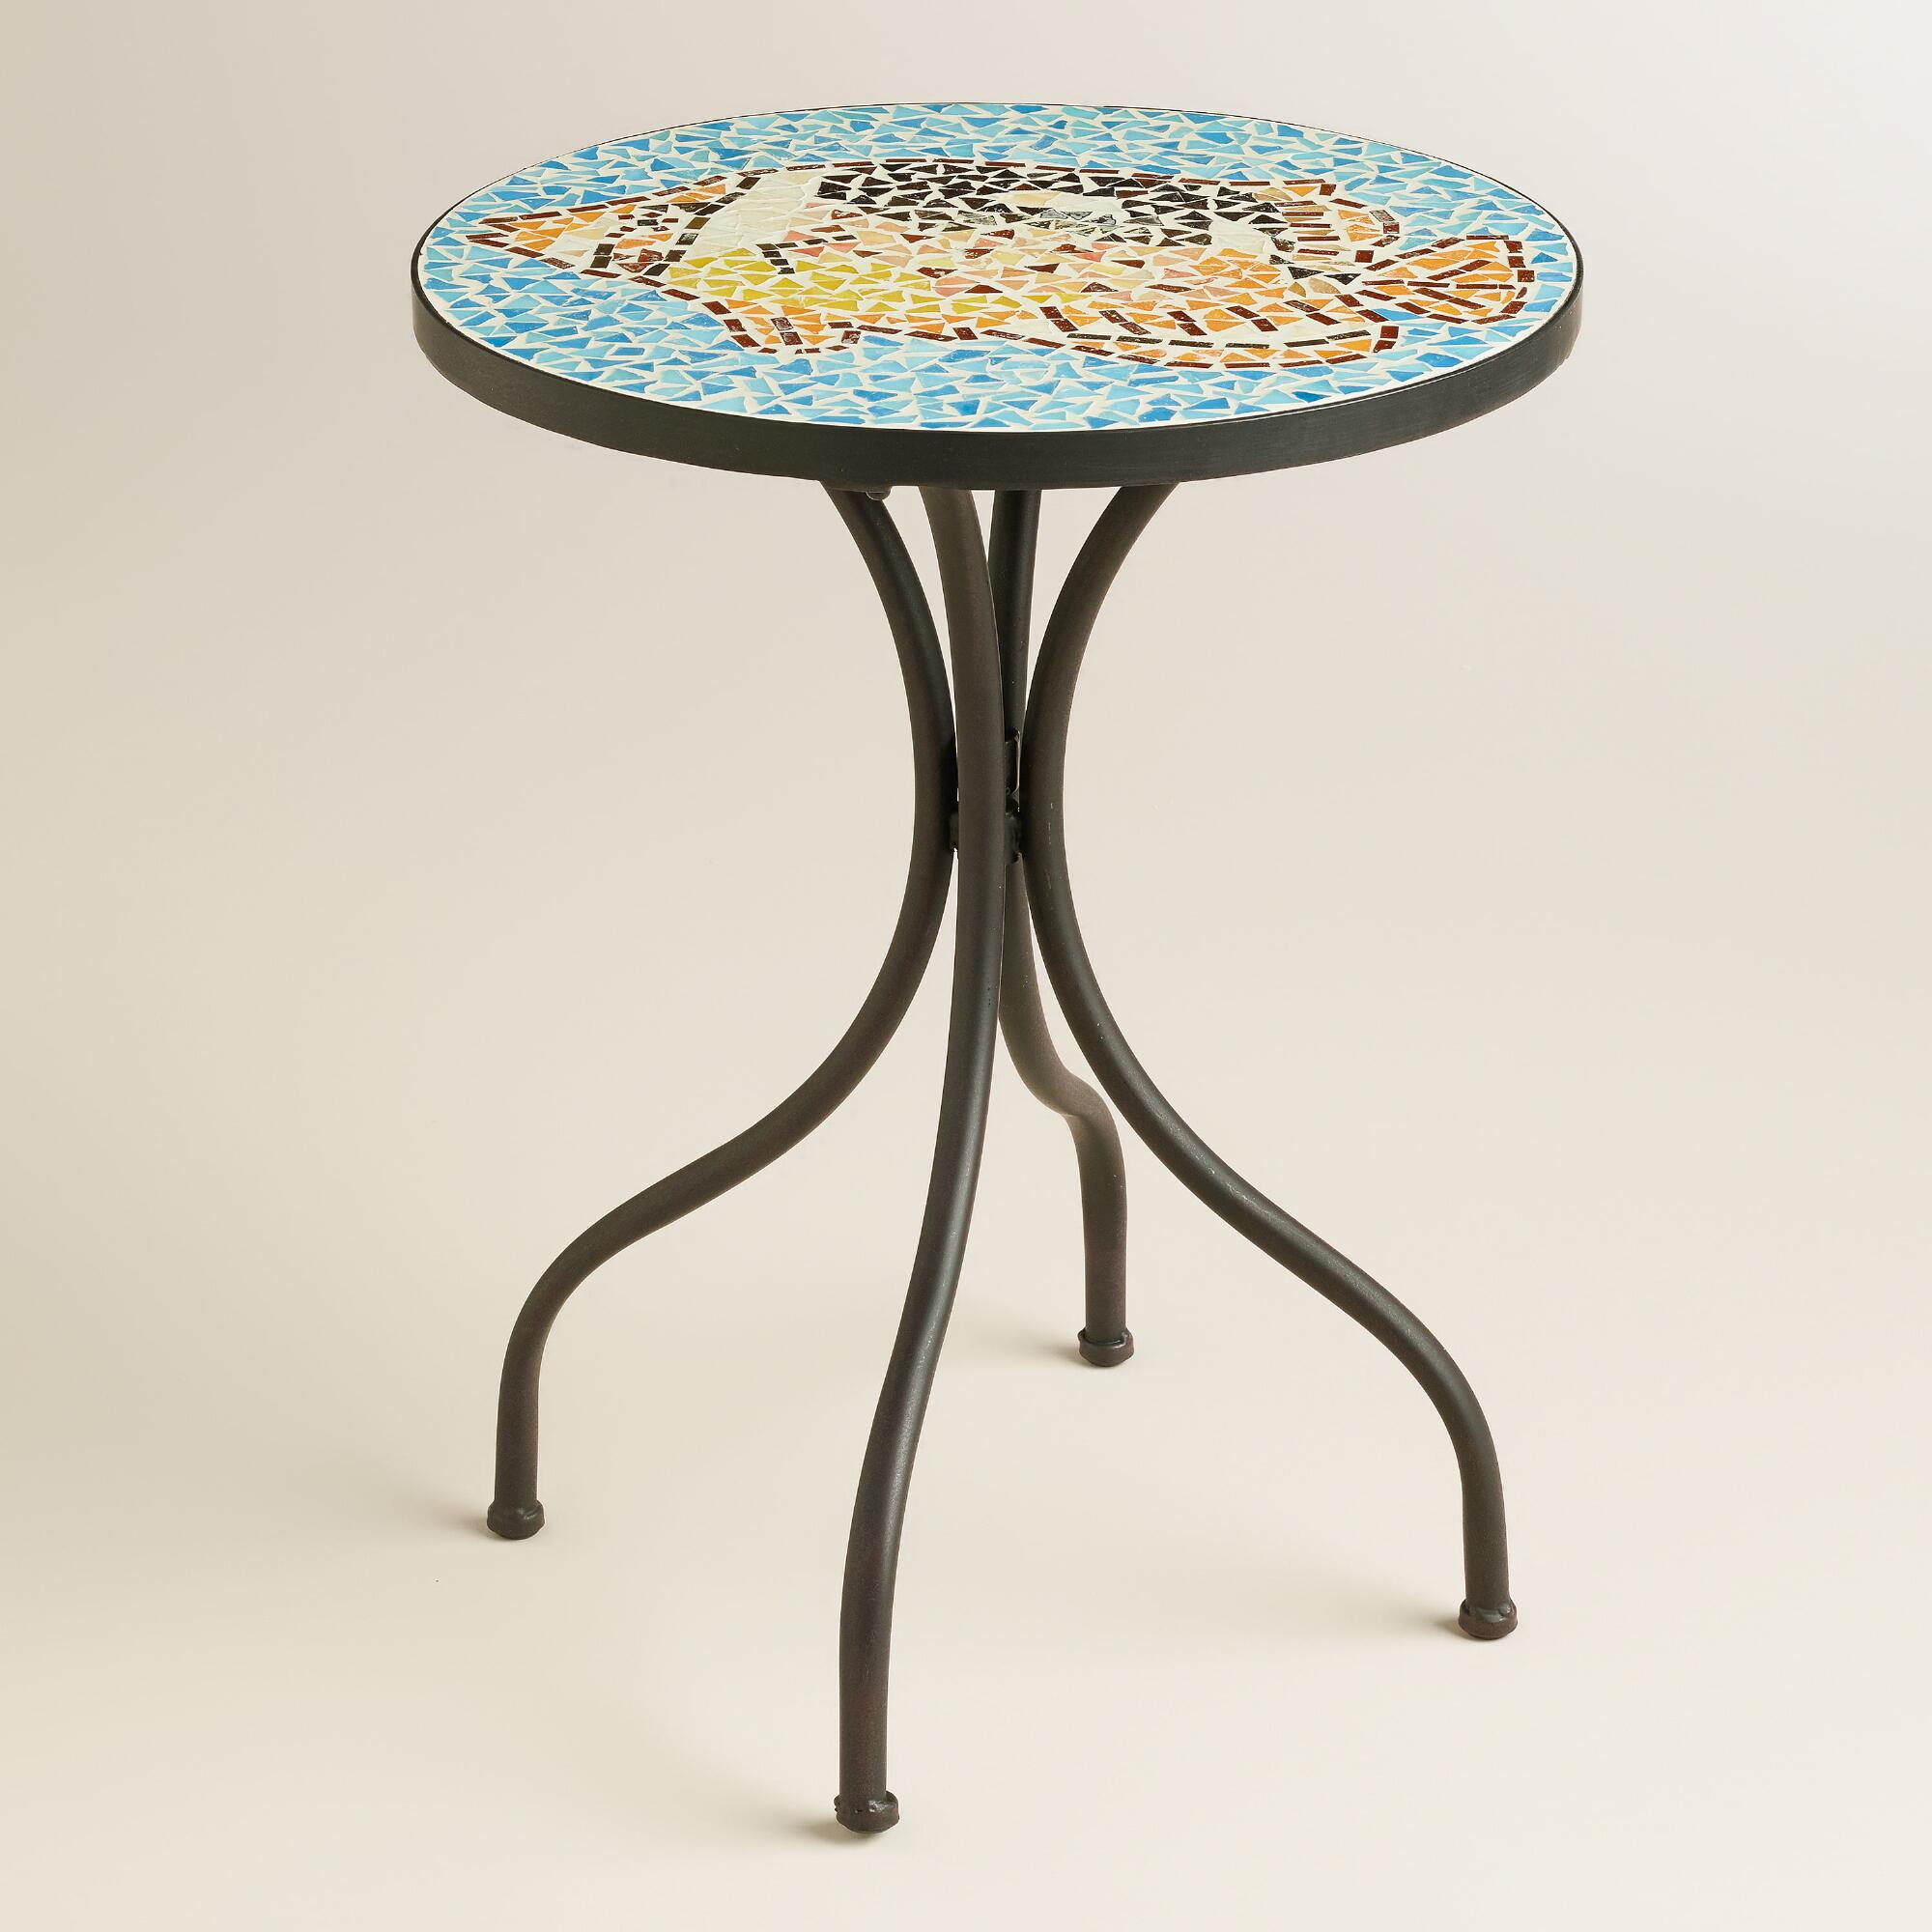 fish mosaic cadiz accent table world market with storage target kohls lamps round wood and metal side dale dining sofa seating drum stool backrest bistro furniture nightstand lamp